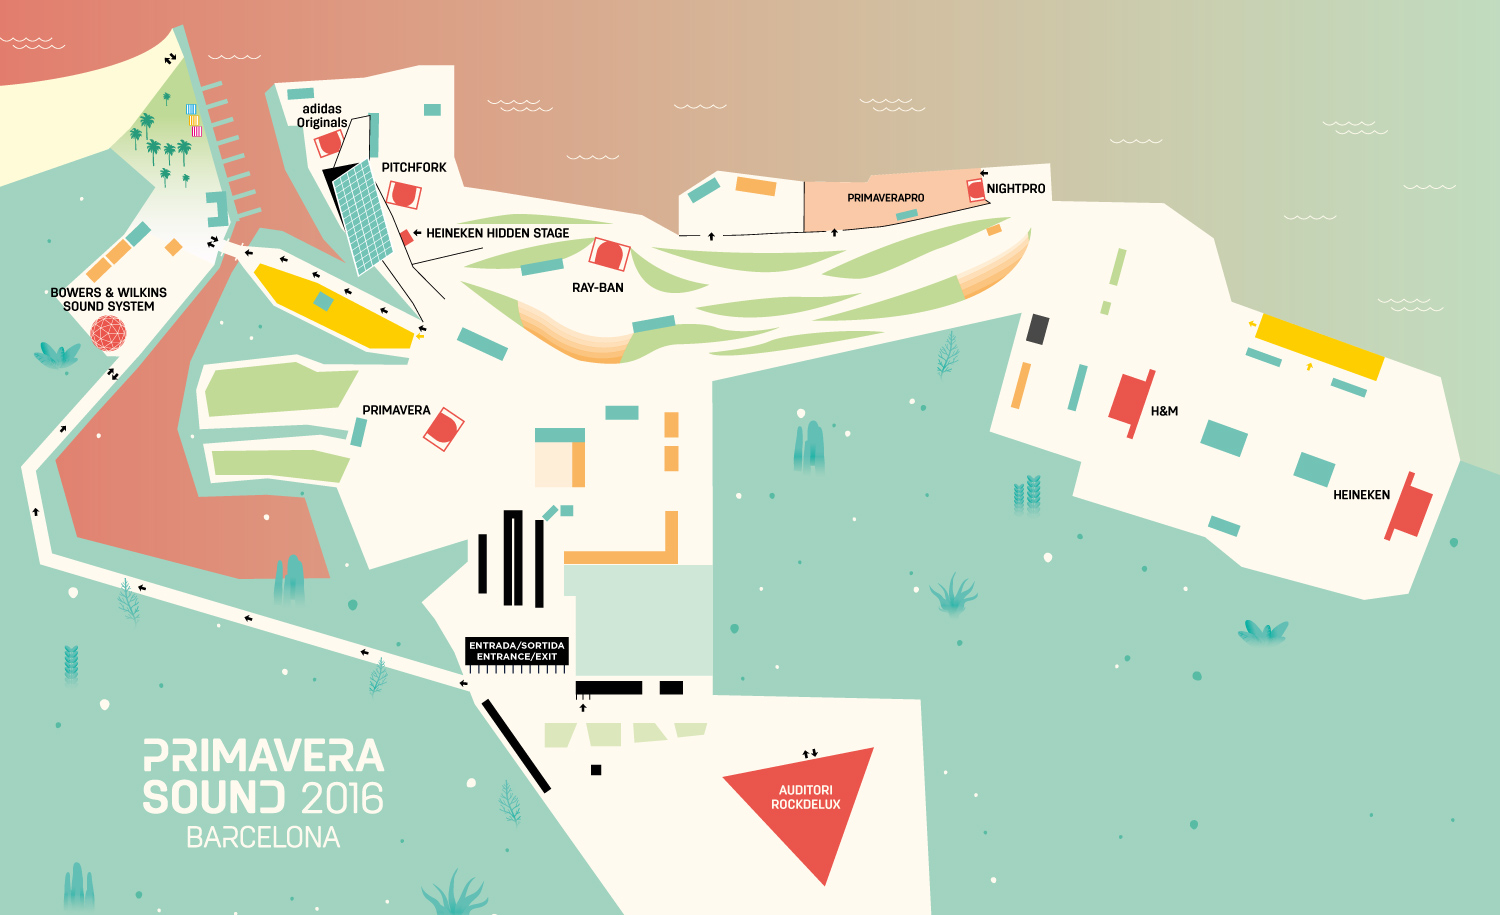 Horaris del Primavera Sound 2016